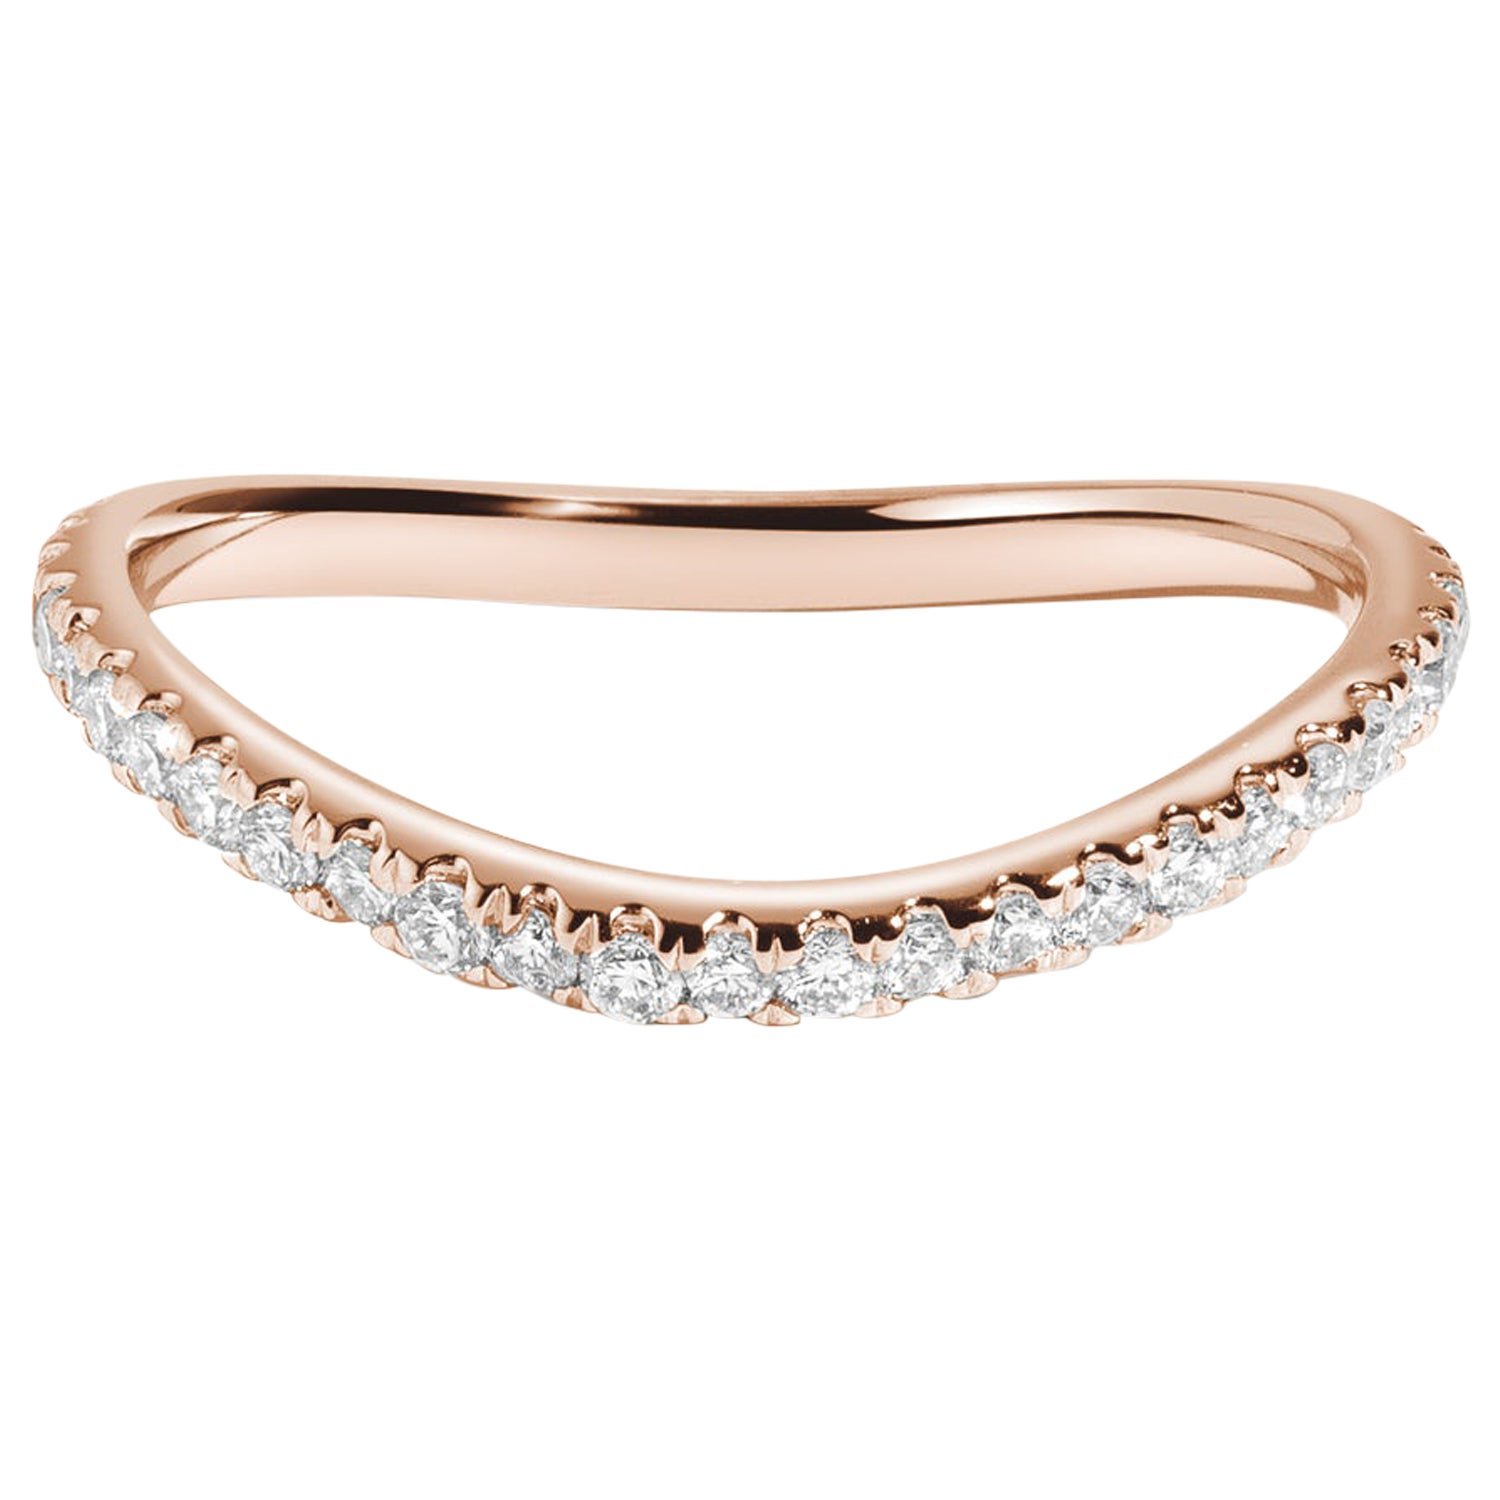 Bossa Nova Diamond Eternity Band in 14 Karat Rose Gold by Selin Kent